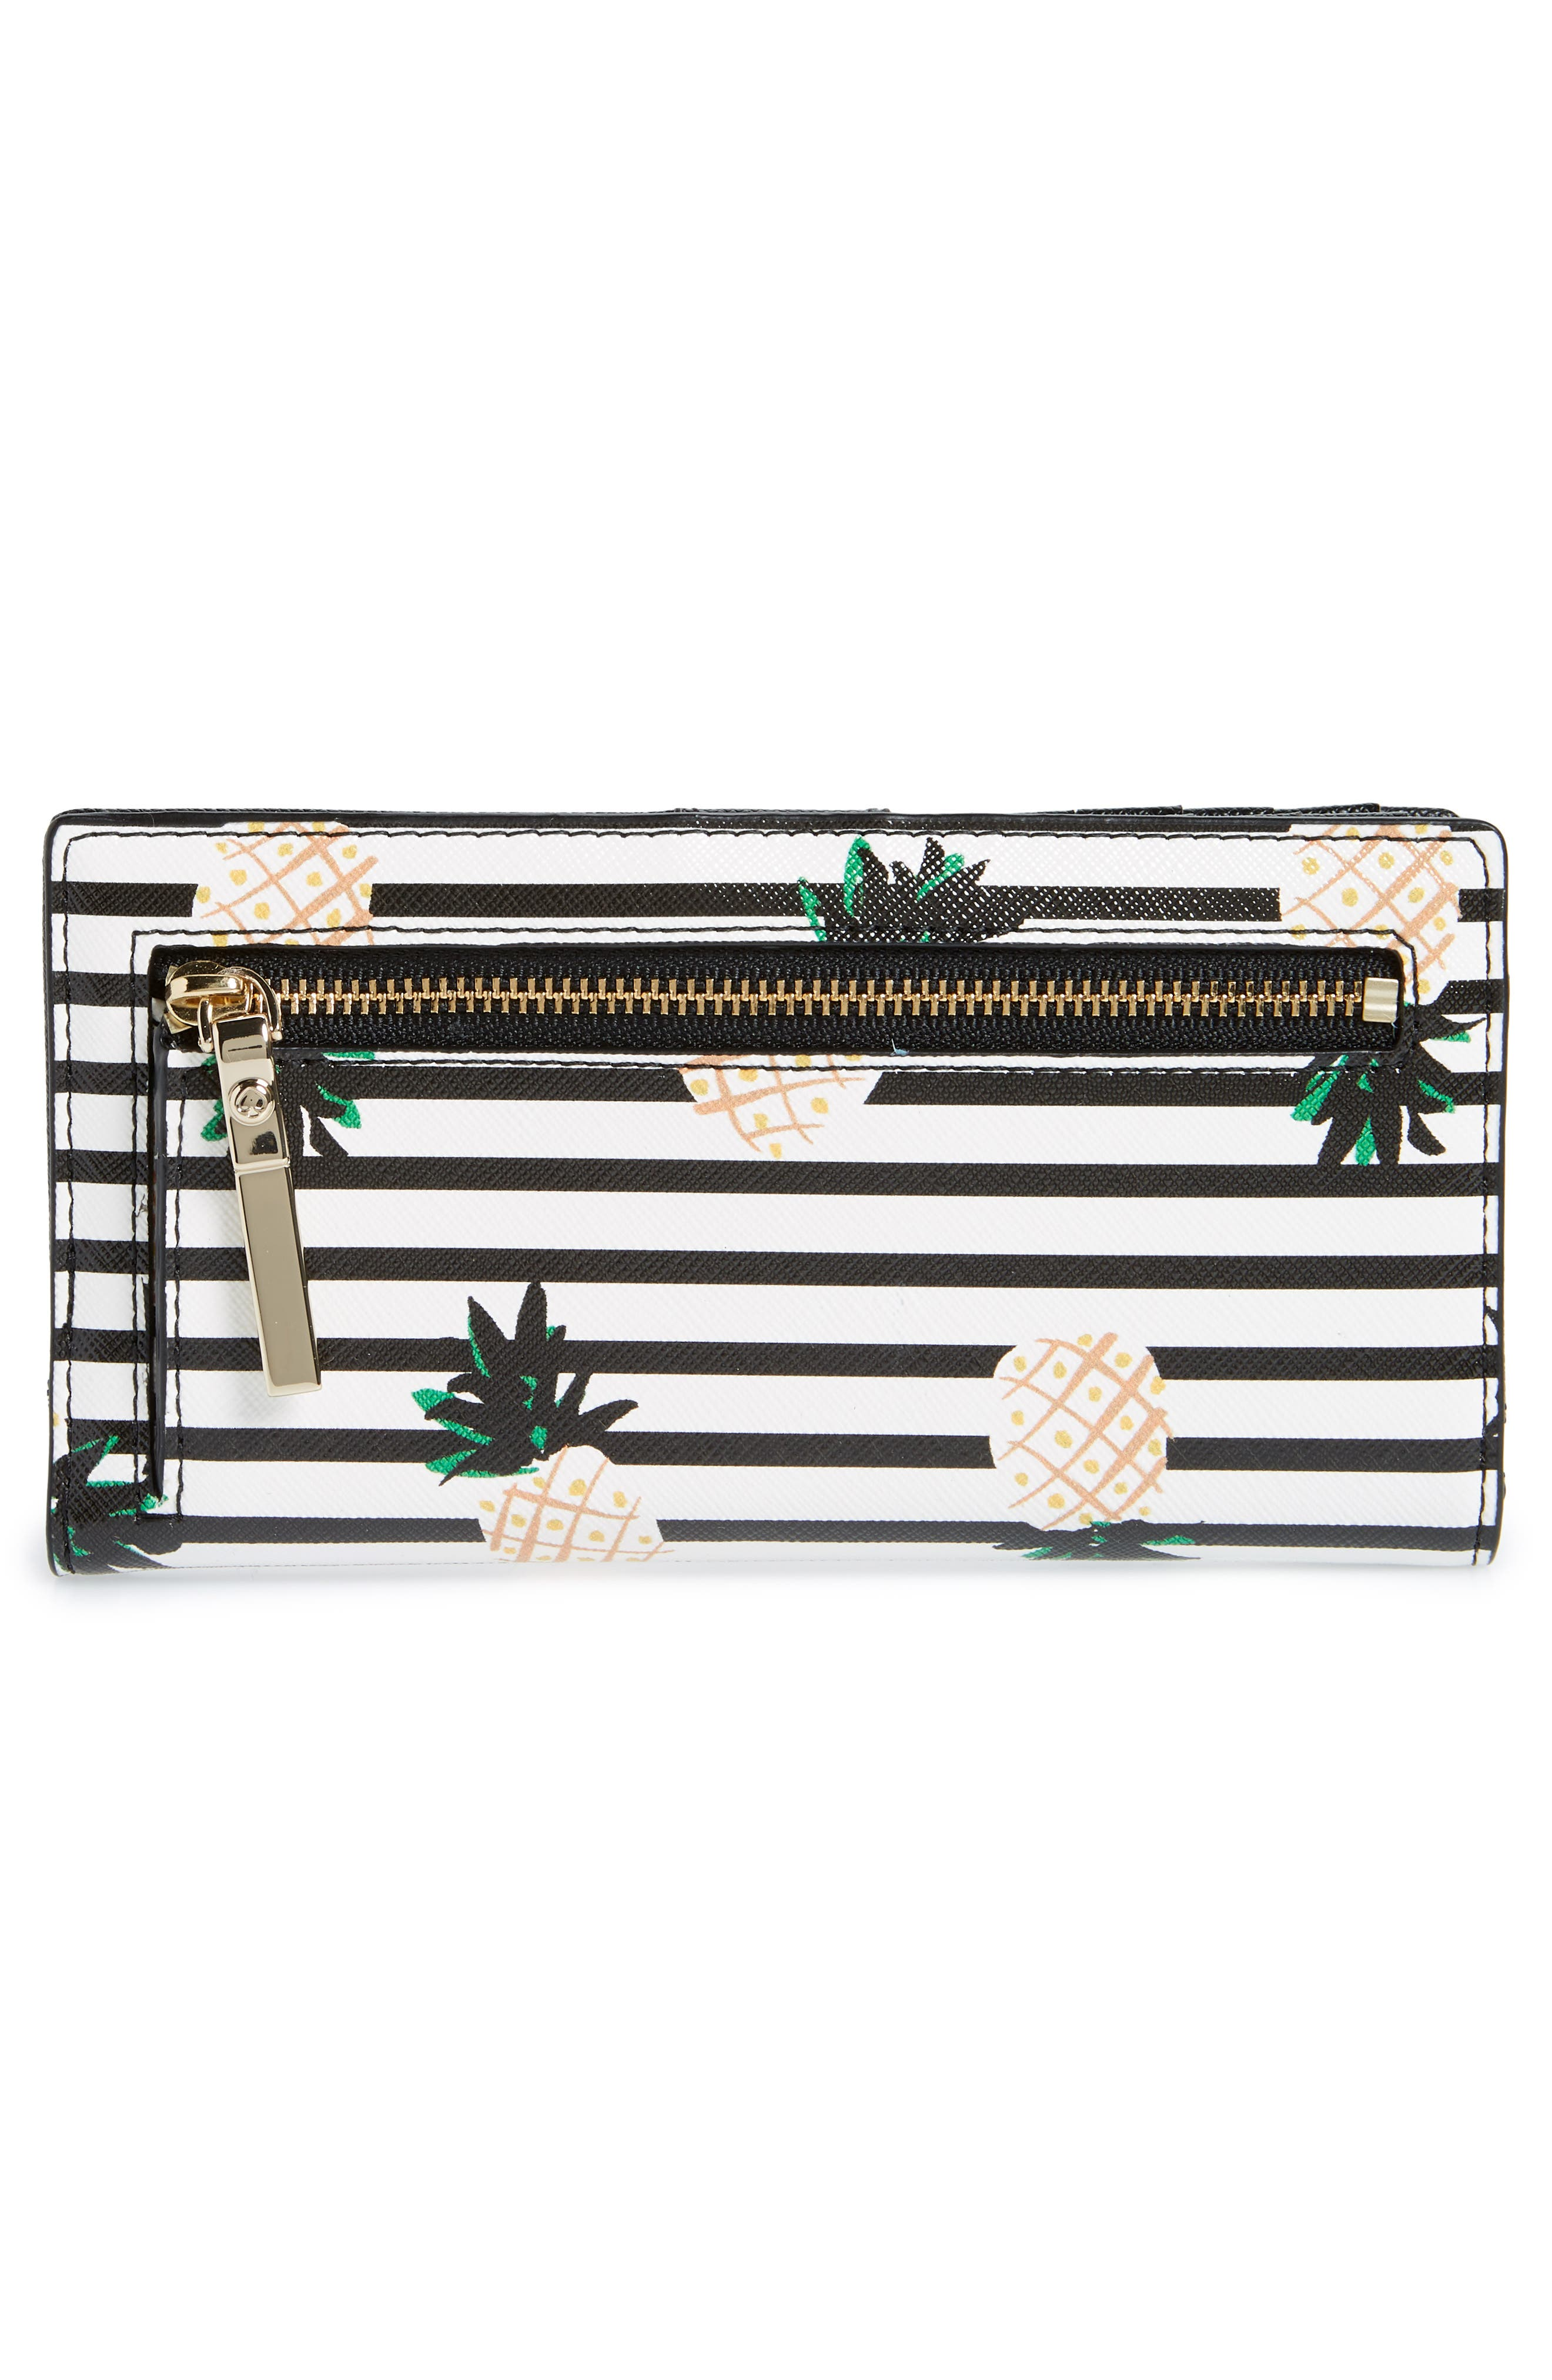 KATE SPADE NEW YORK,                             cameron street - stacy pineapples glazed canvas wallet,                             Alternate thumbnail 3, color,                             700